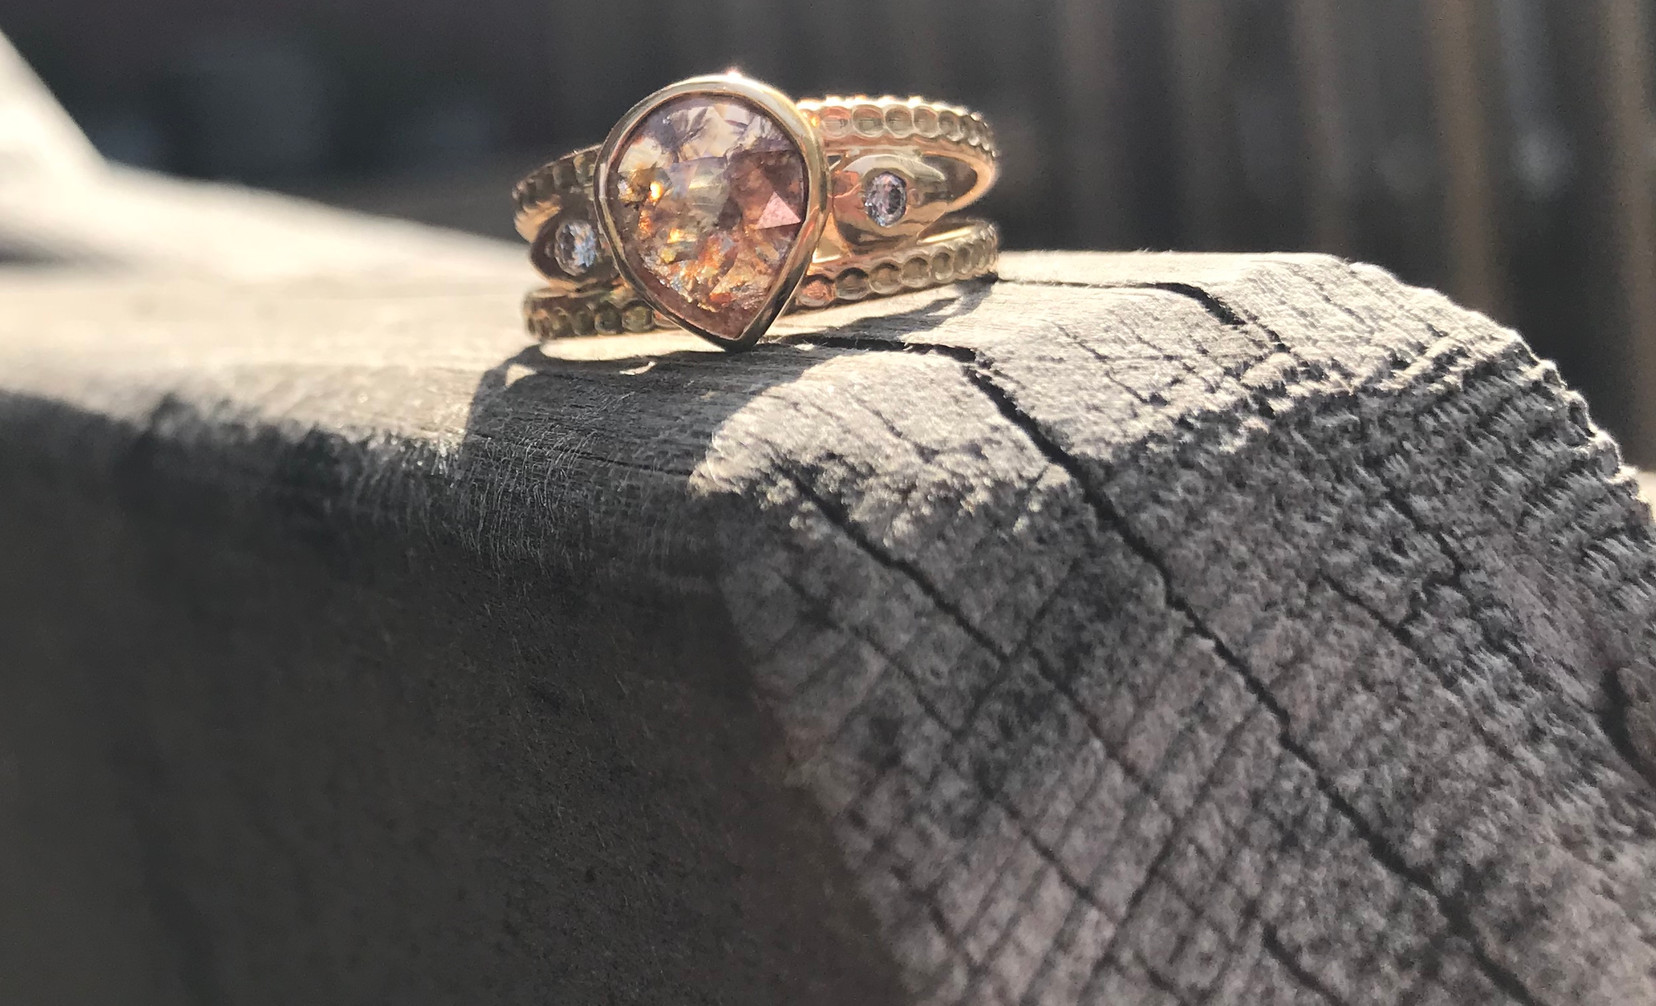 Tear Shaped Rustic Diamond and White Diamonds in Gold